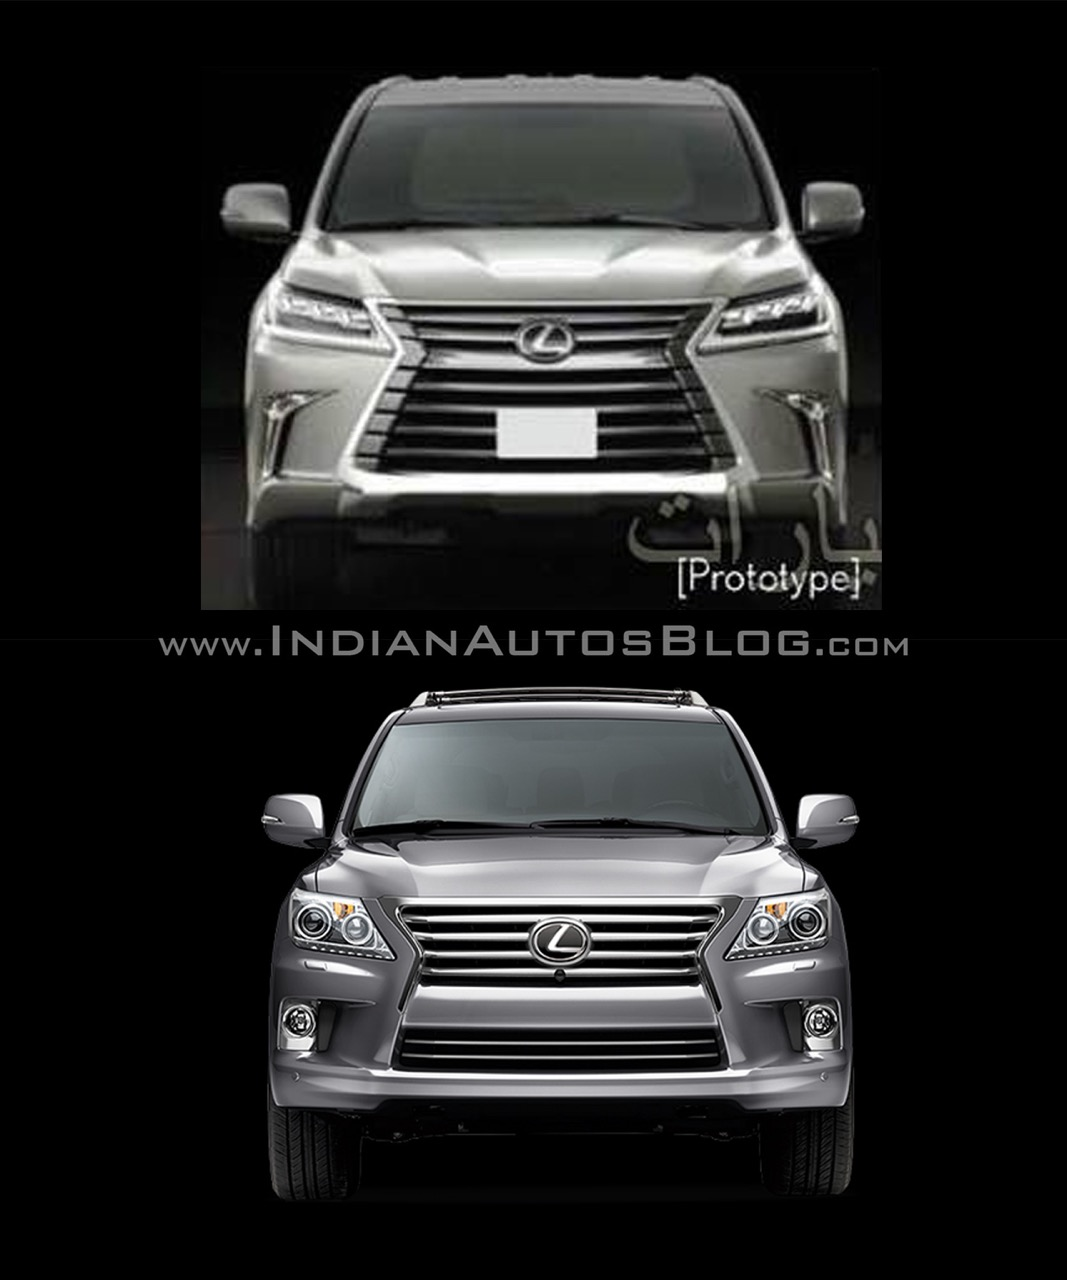 2016 Lexus LX570 vs 2014 Lexus LX570 front Old vs New